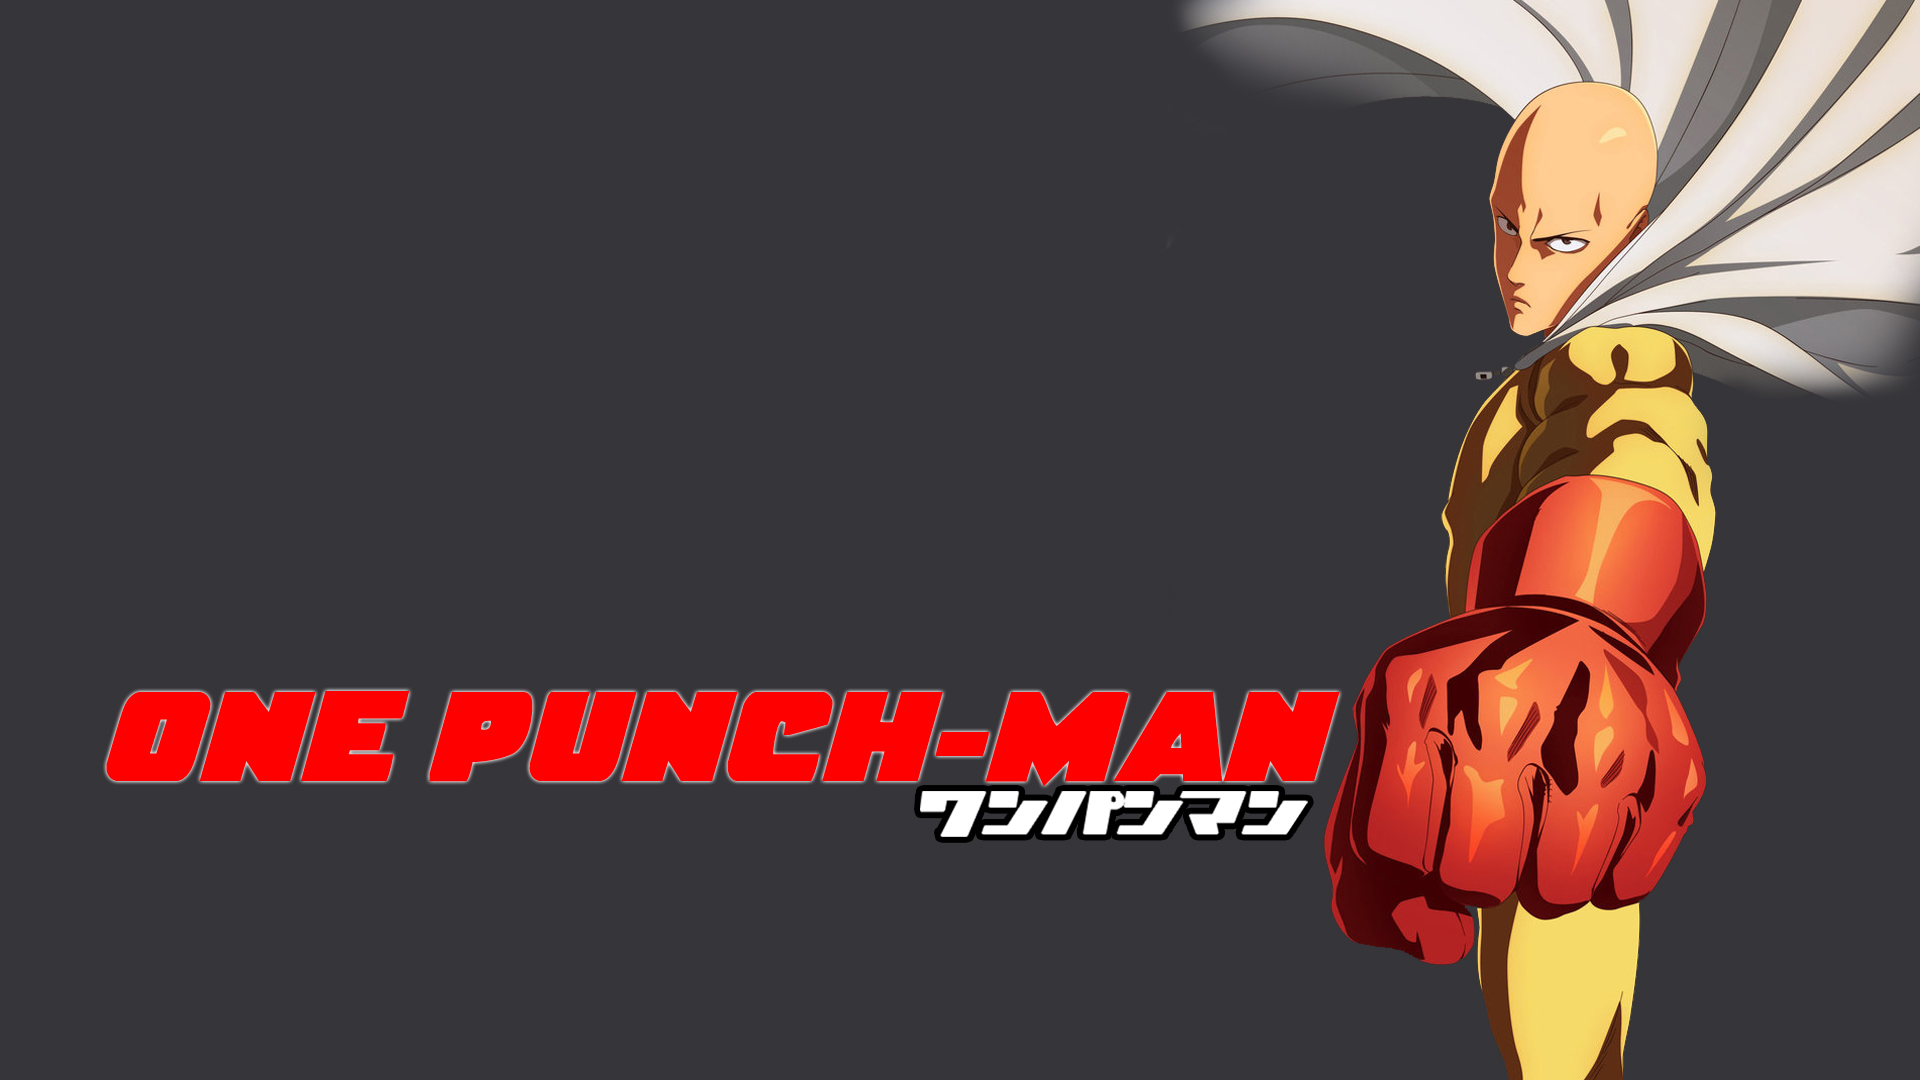 Download Wallpaper From Anime One Punch Man With Tags Pc One